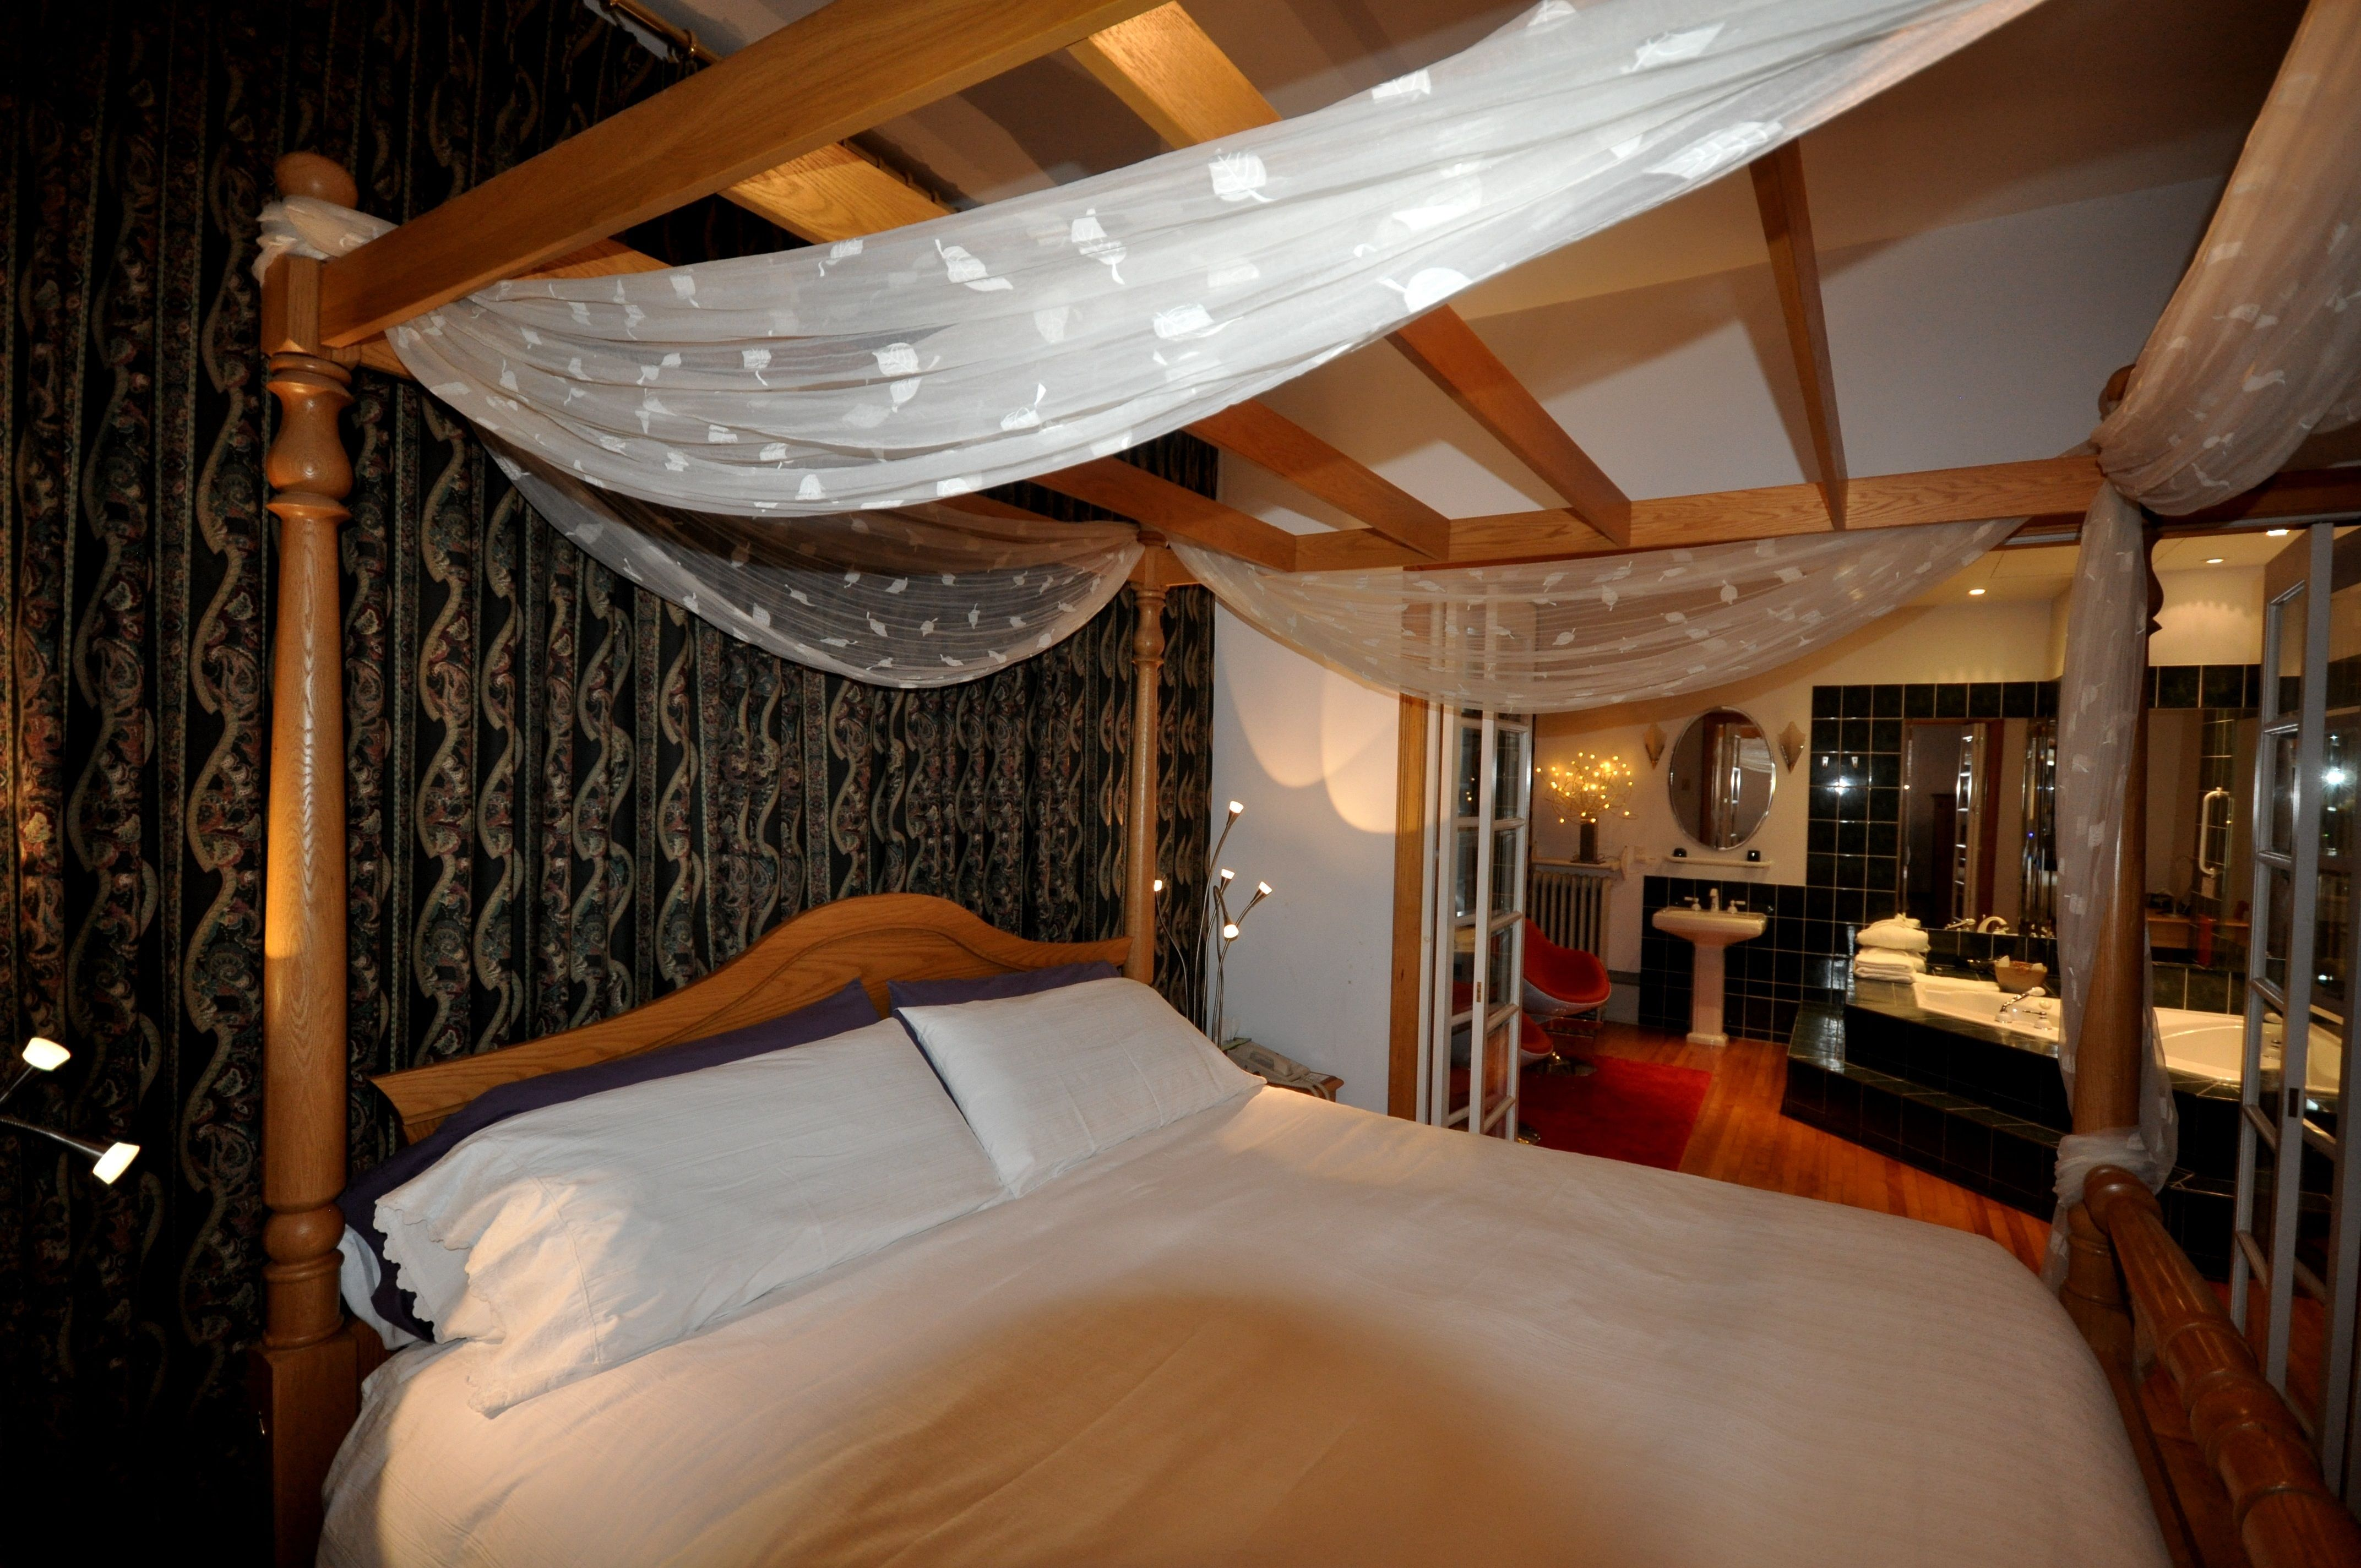 swiss hotel ottawa hotels romantic jacuzzi suite with king bed